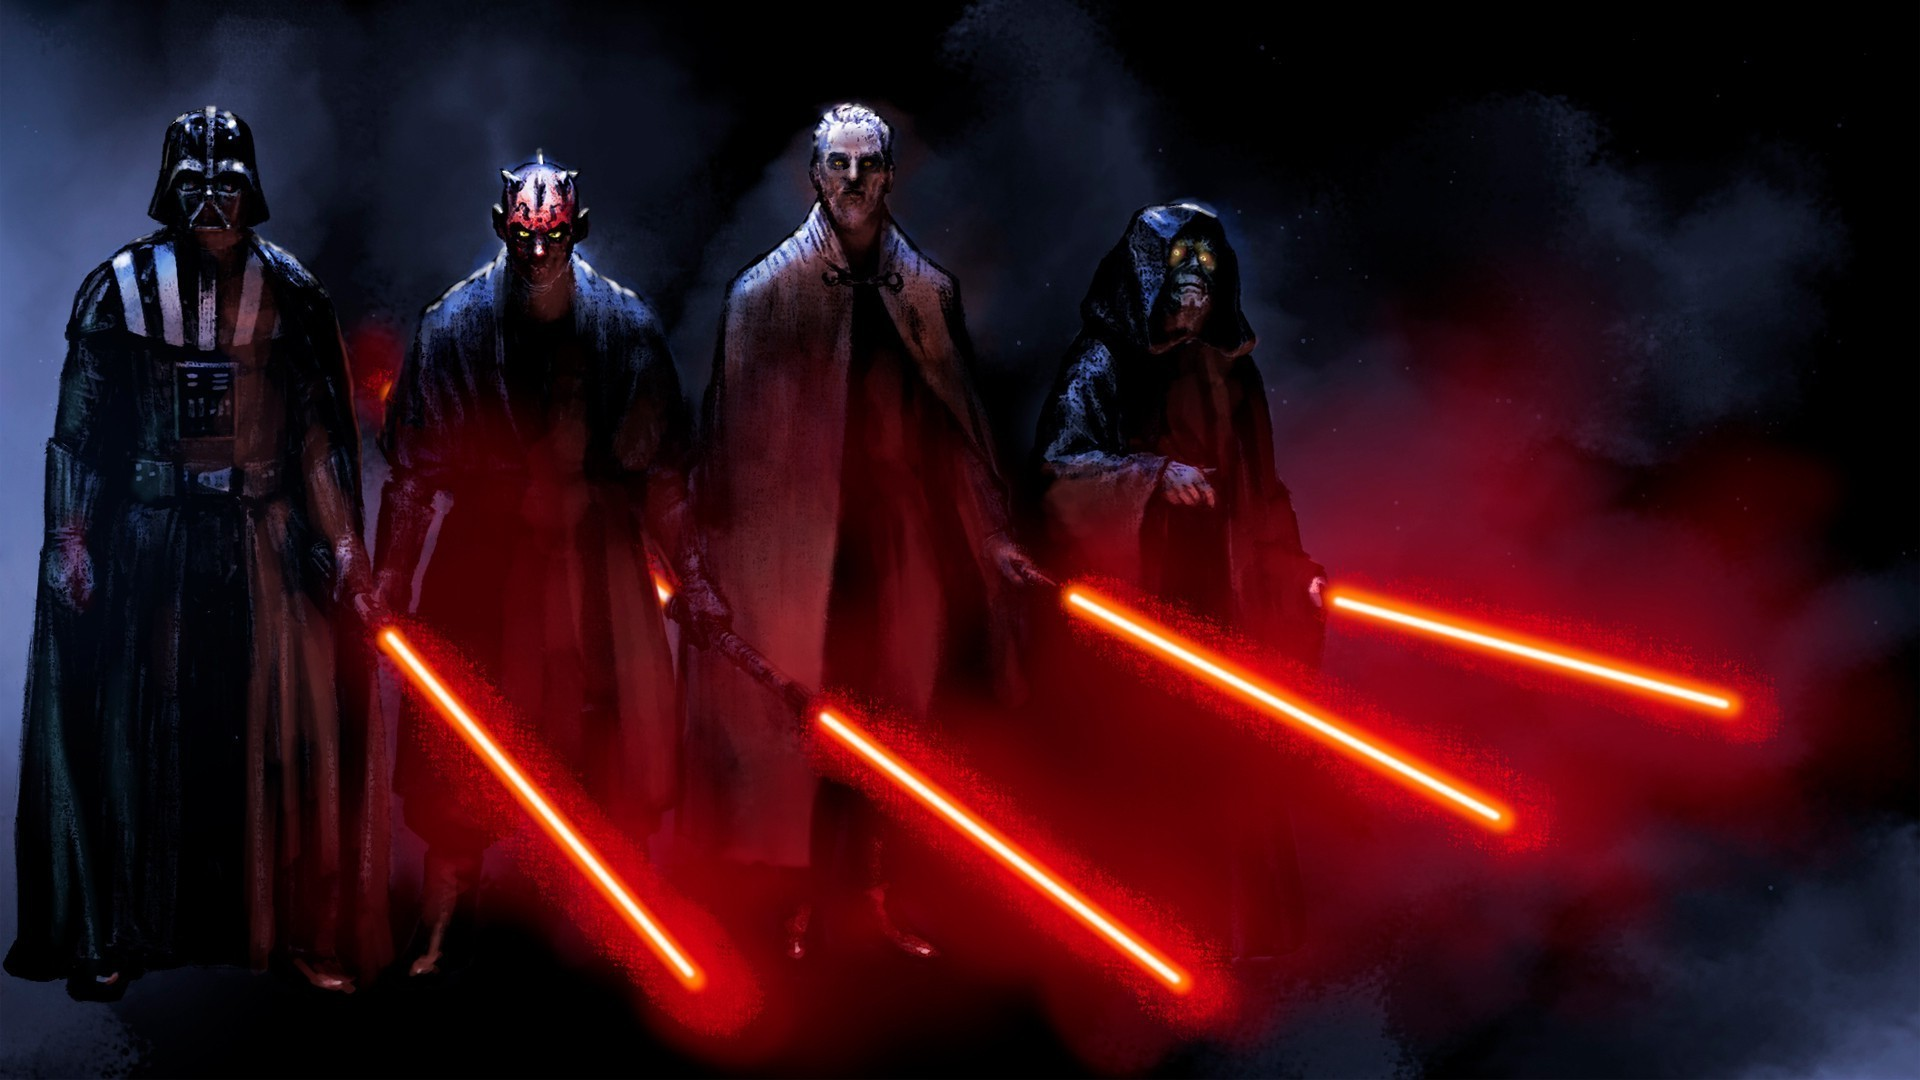 Star Wars images Darth Maul HD wallpaper and background photos | HD  Wallpapers | Pinterest | Darth maul wallpaper, Hd wallpaper and Wallpaper